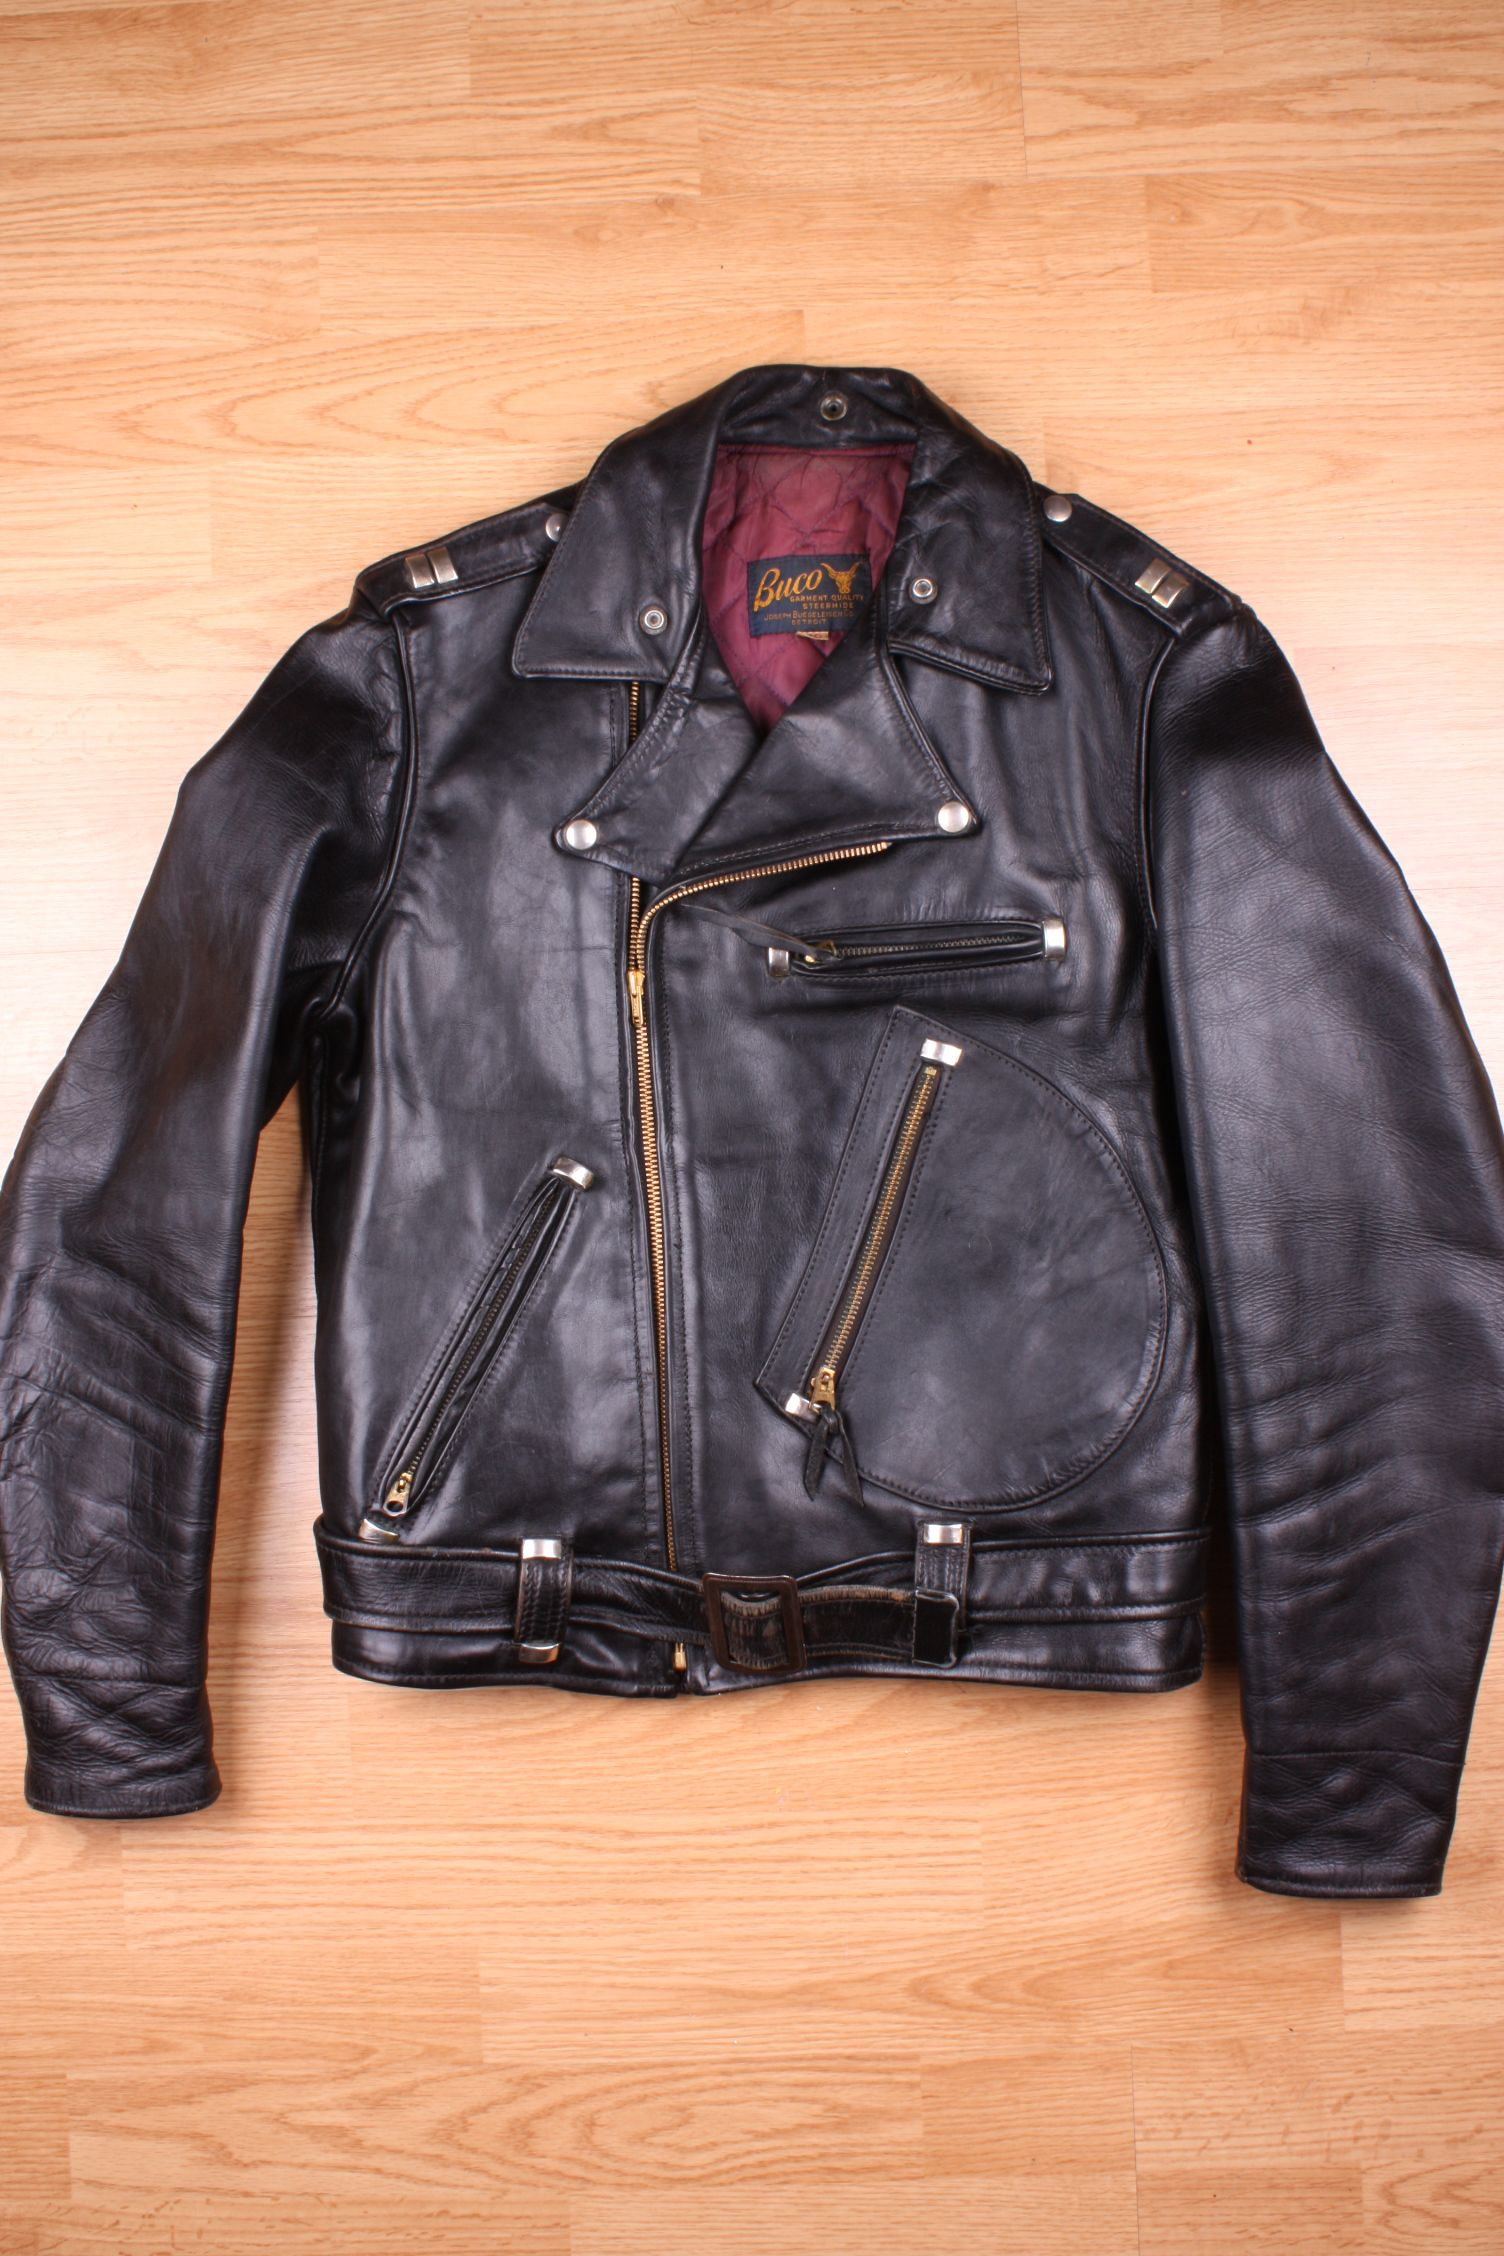 d80c8ed82 Buco Leather Jacket model J-82 WOW ITS AMAZING! | Old Biker Leathers ...